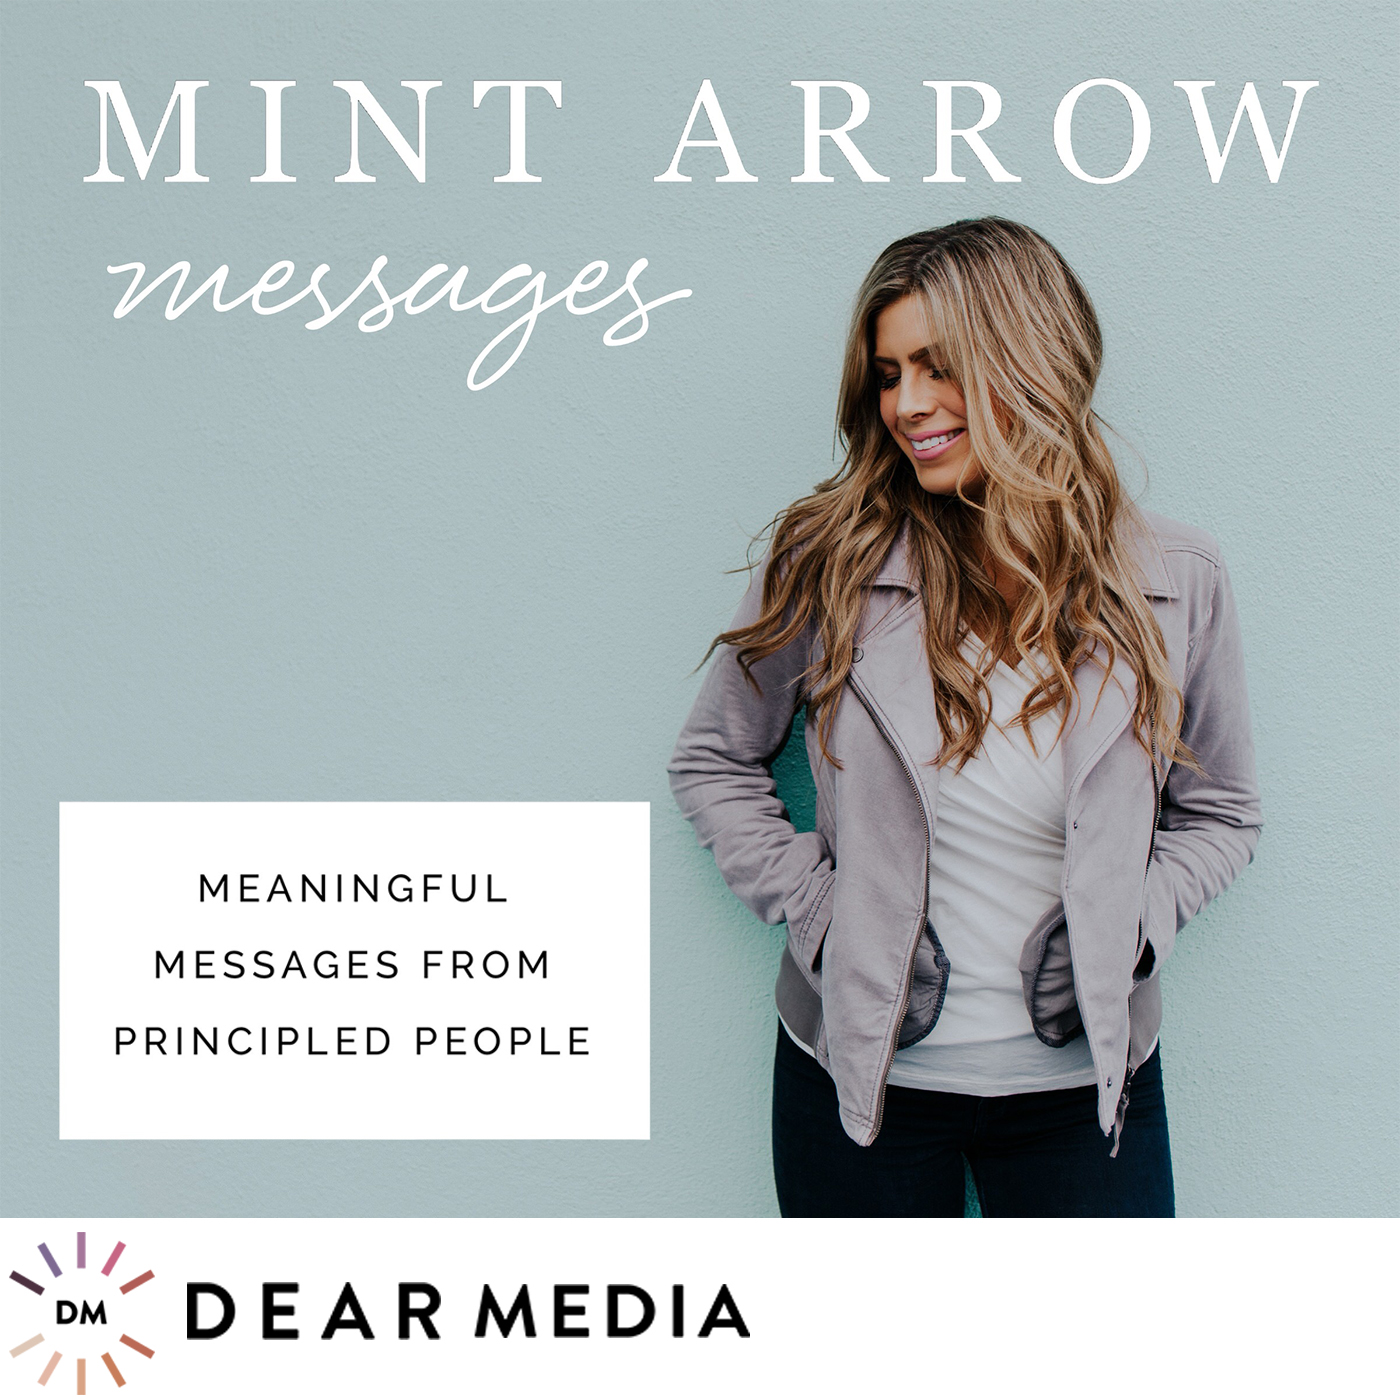 Mint Arrow Messages